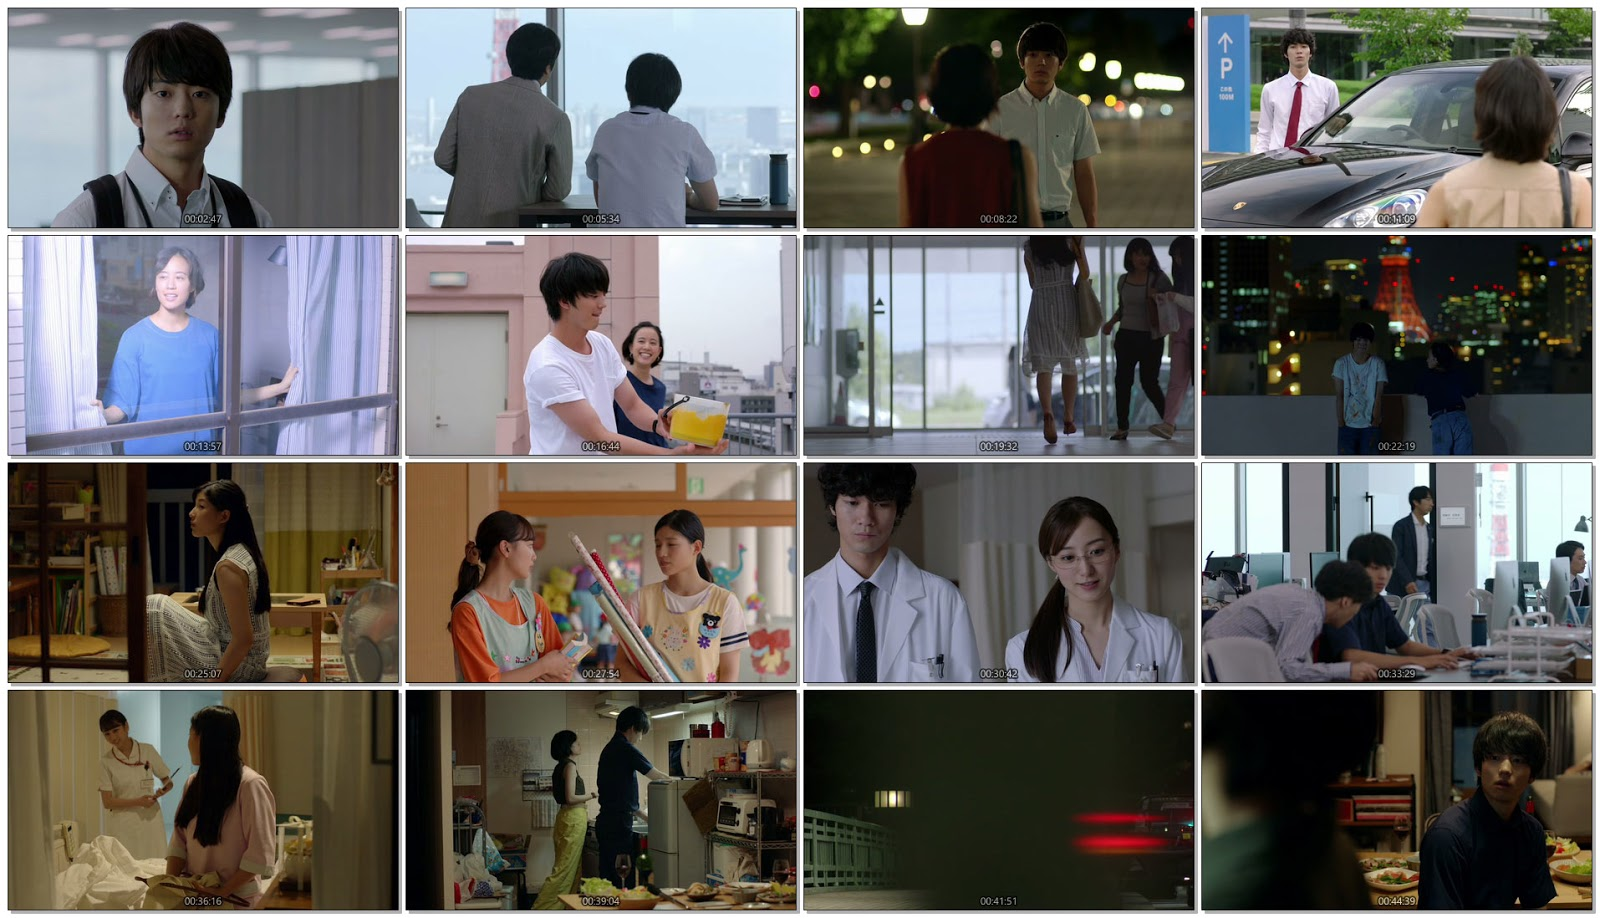 Tokyo Love Story 2020 - Episode 1-6 1080p